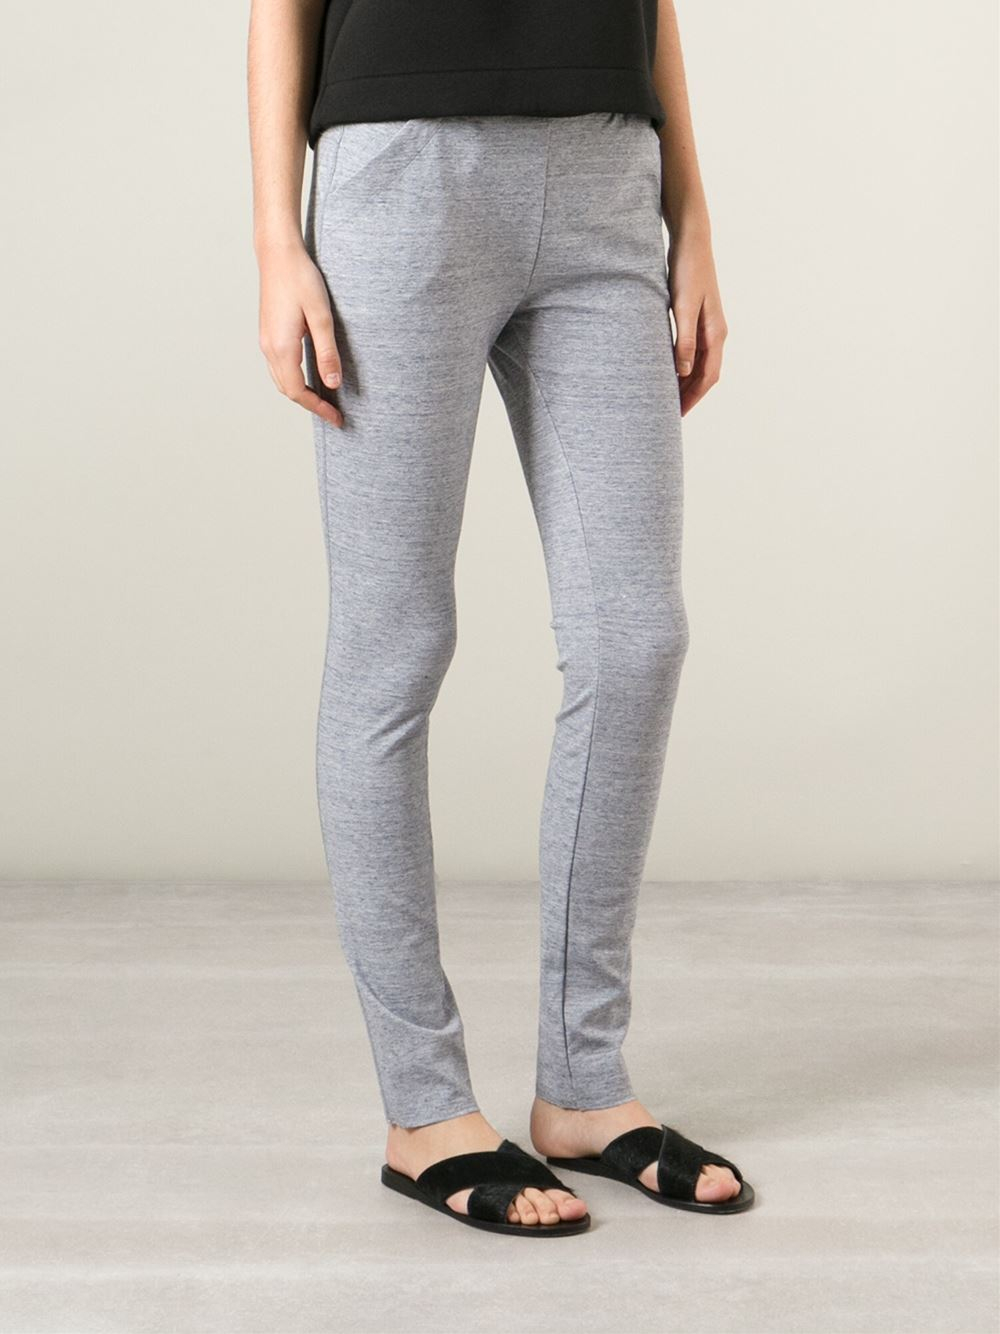 Design Custom Sweatpants Online. Create Your Own Sweatpants for Your Team or Event. () Relaxed and comfortable - we love these open bottom sweatpants. These sweatpants are an easy addition to your athletic wardrobe. An updated look to the classic sweatpant. Start Designing.